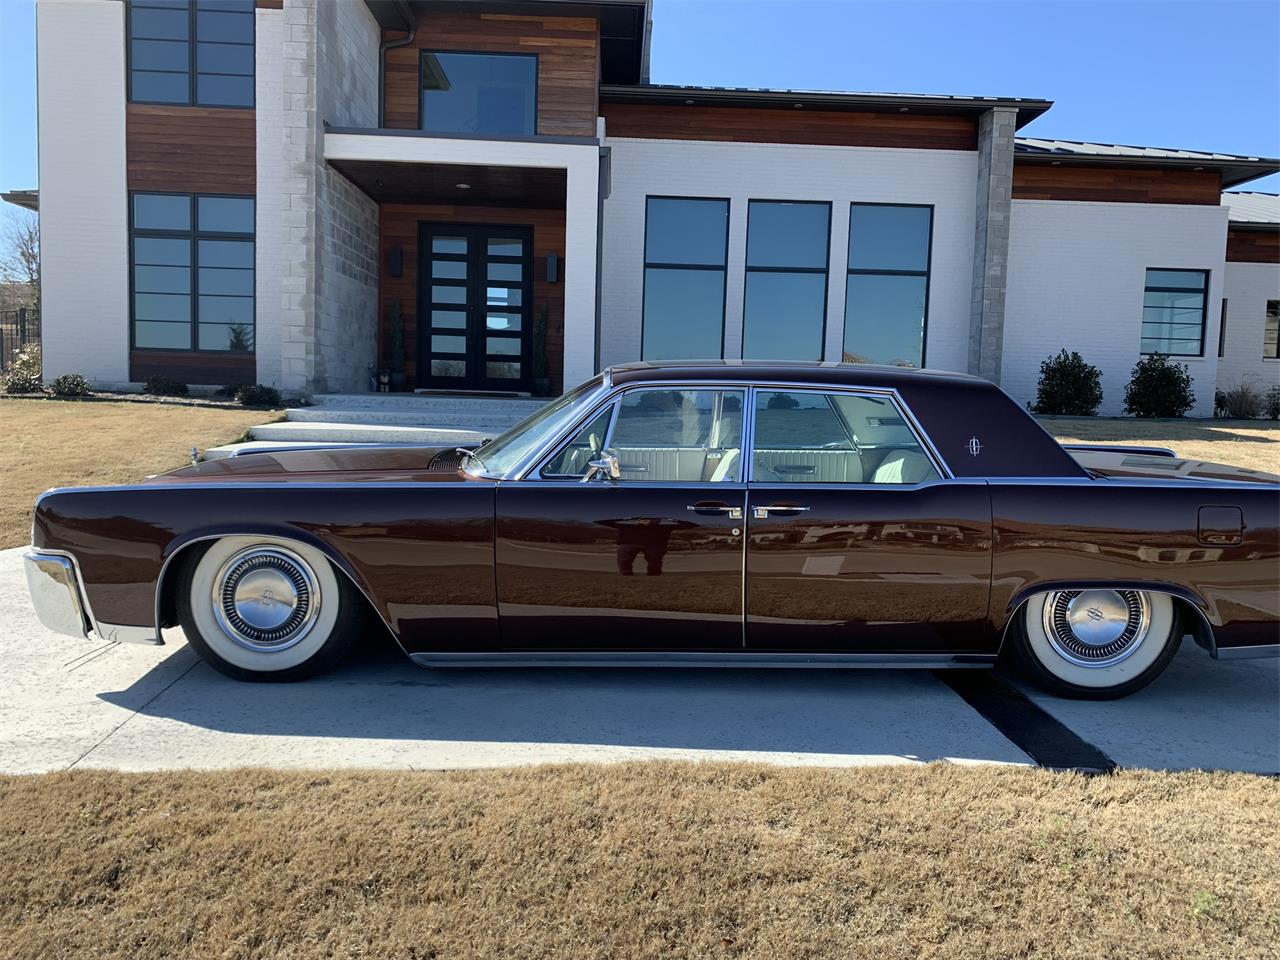 1964 Lincoln Continental (CC-1359529) for sale in BENBROOK, Texas